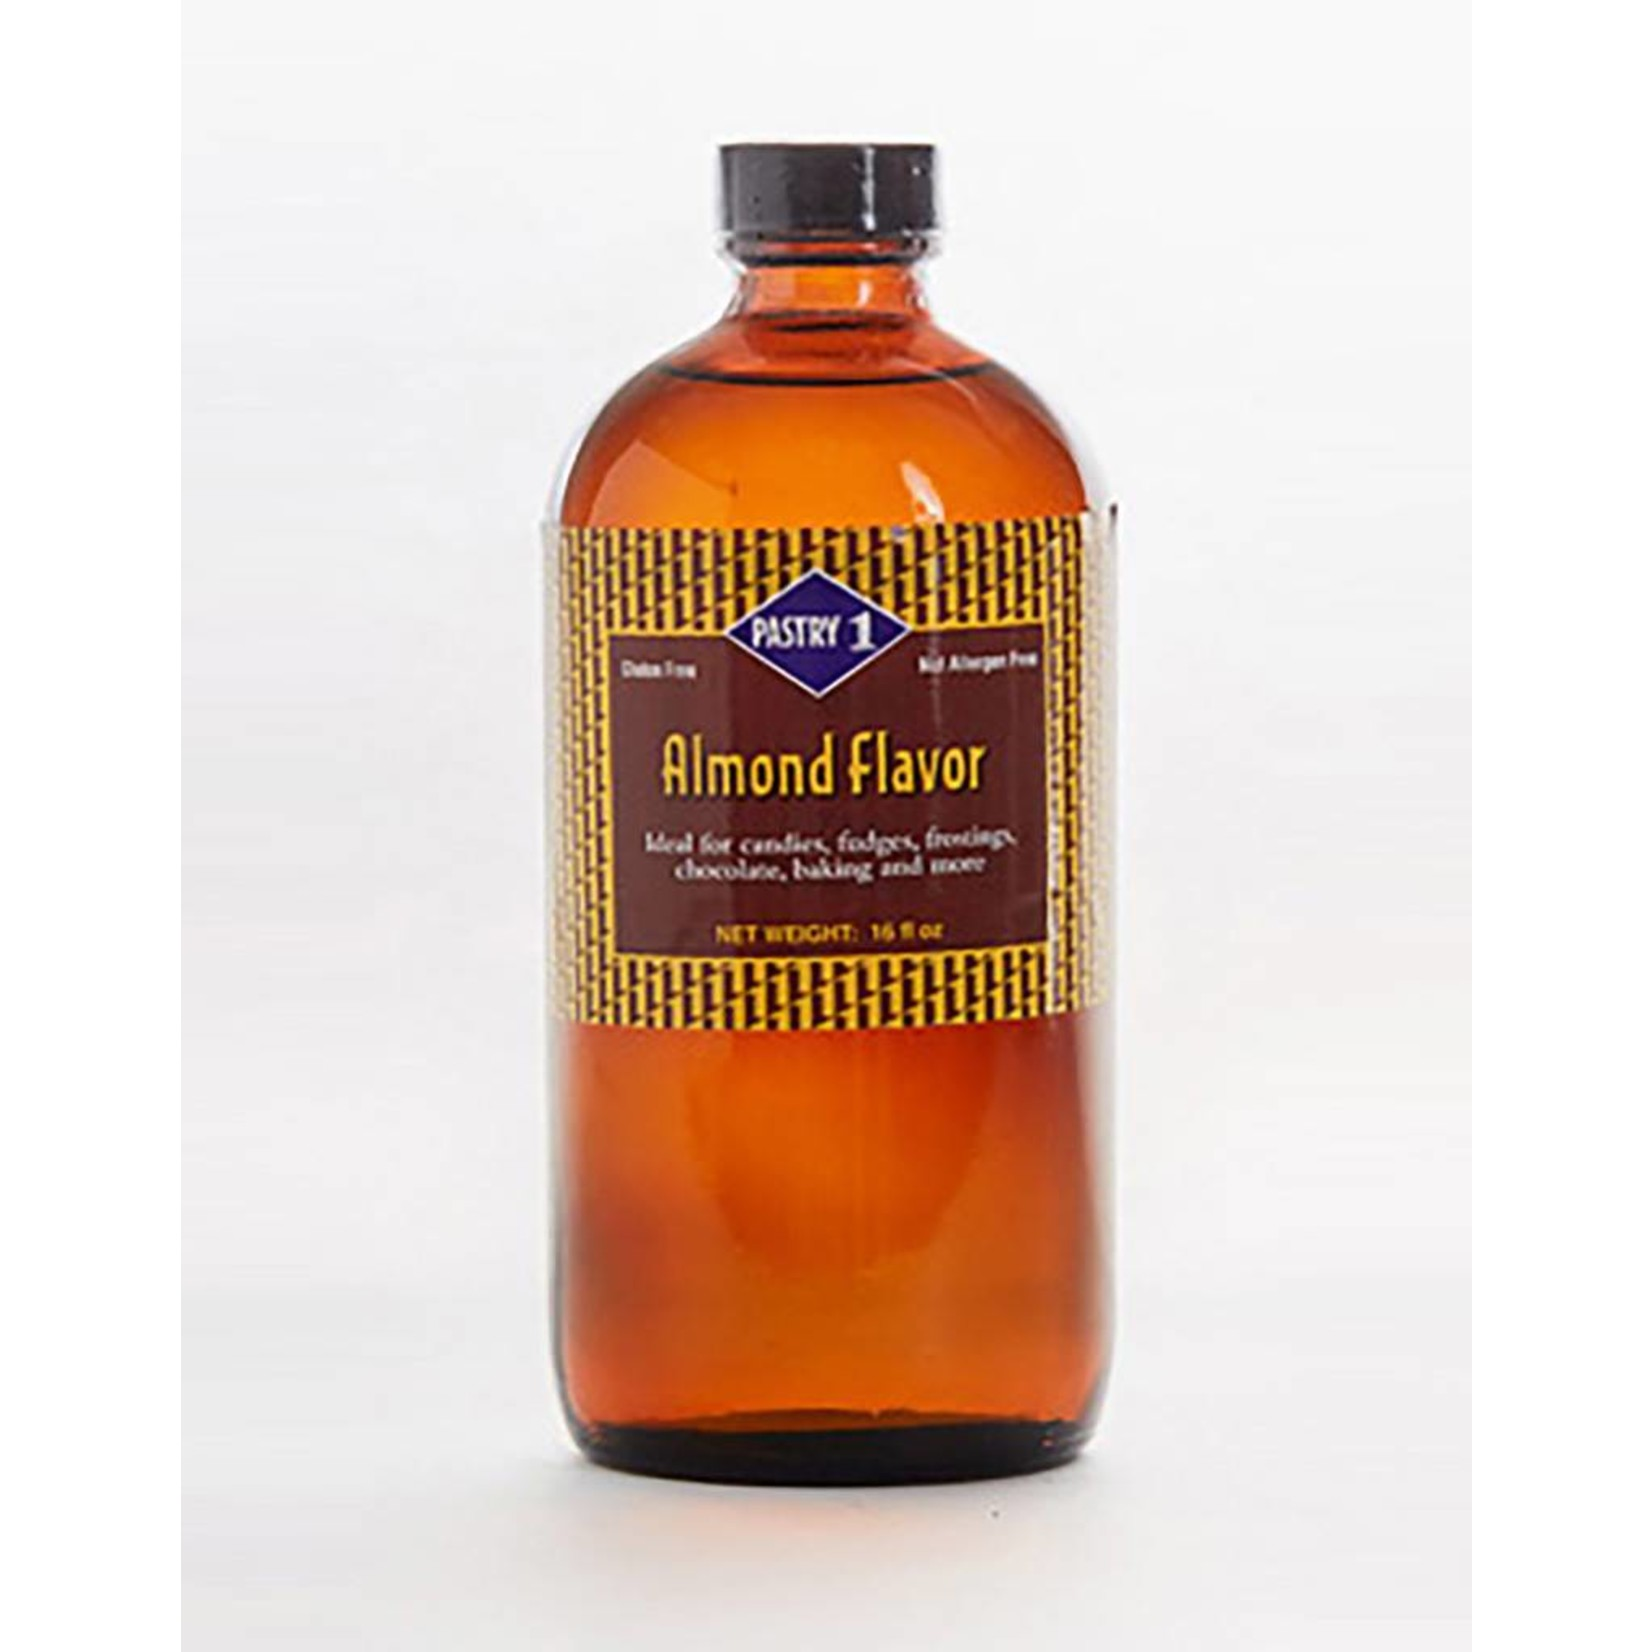 Pastry 1 Pastry 1 - Almond essence, oil based - 16oz, PA8074